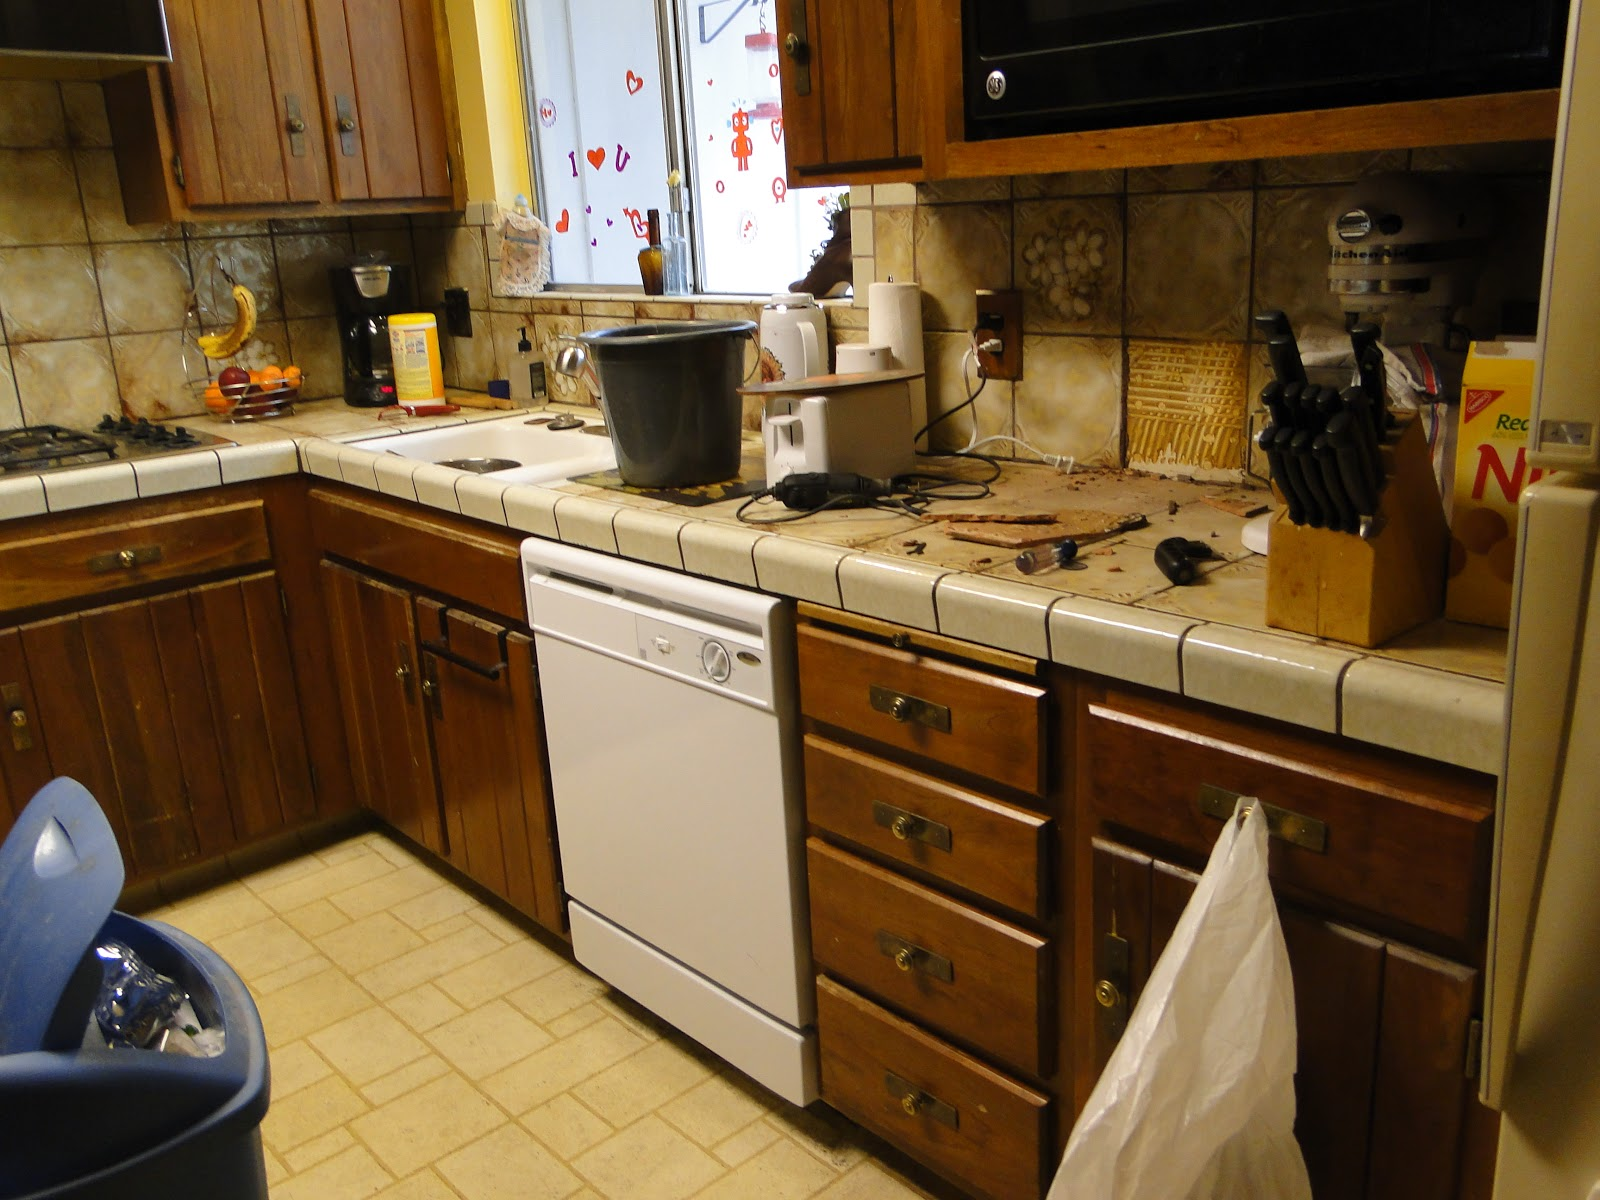 Not ashamed kitchen remodel on a shoestring budget for Renovate a kitchen on a budget